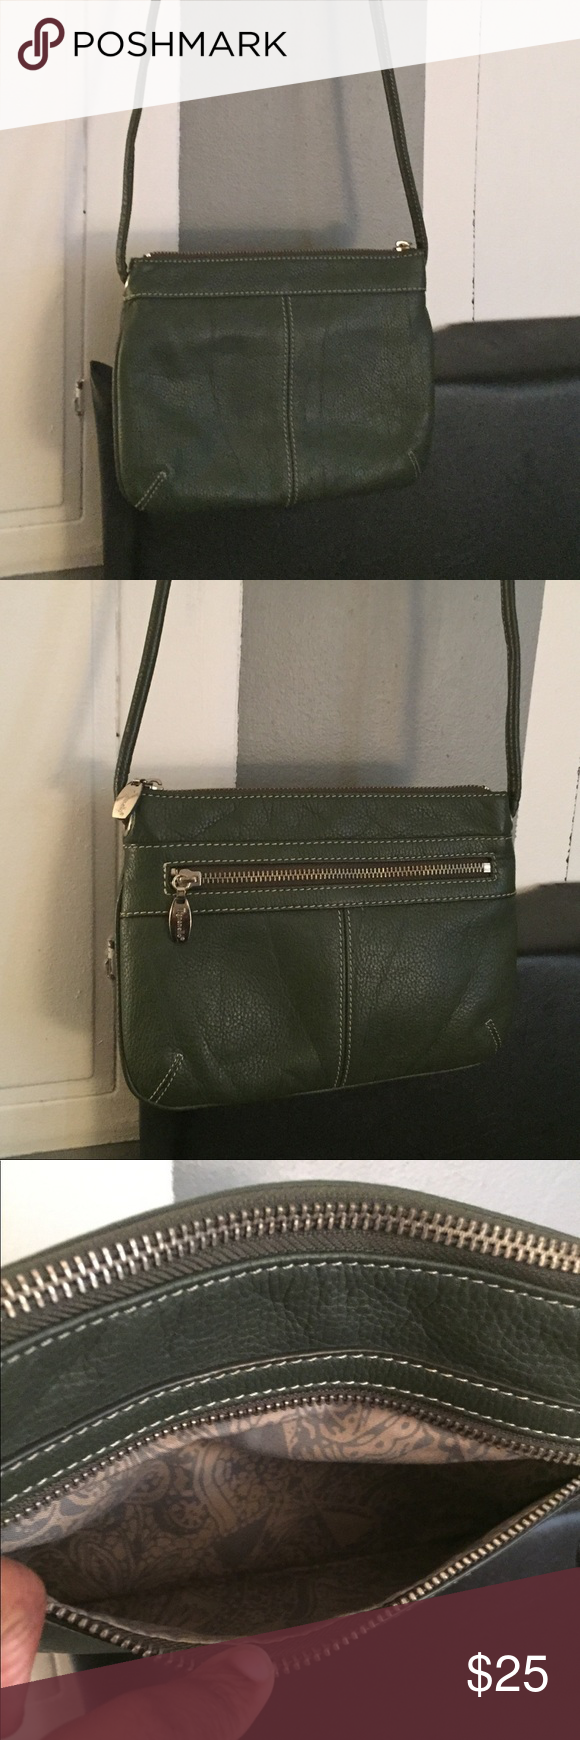 Tignanello Crossbody Bag Green Bags